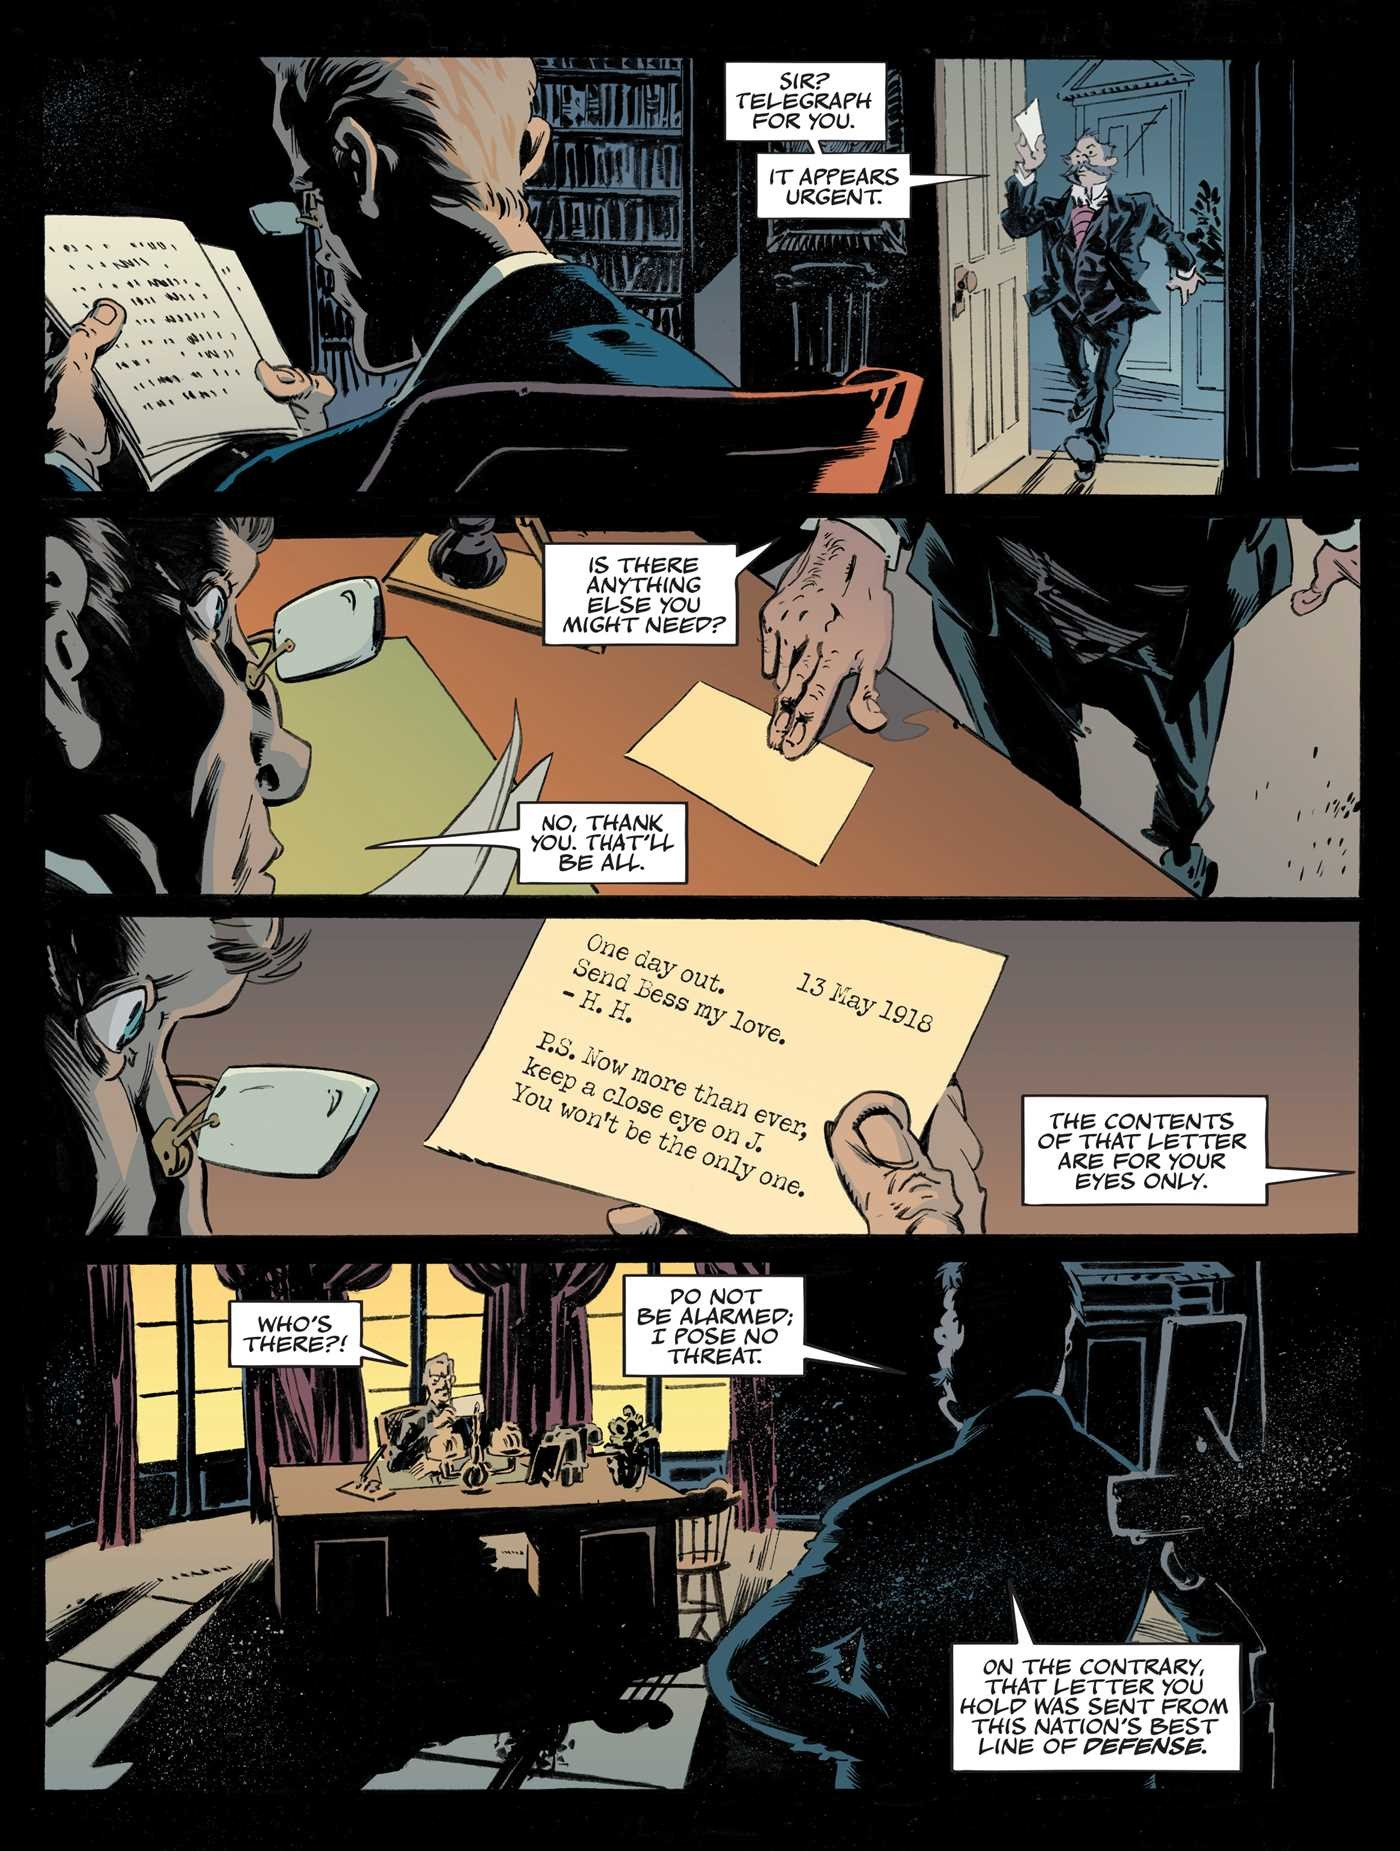 after-houdini-page1-Jeremy-Holt-Comic-Book-Author.jpg